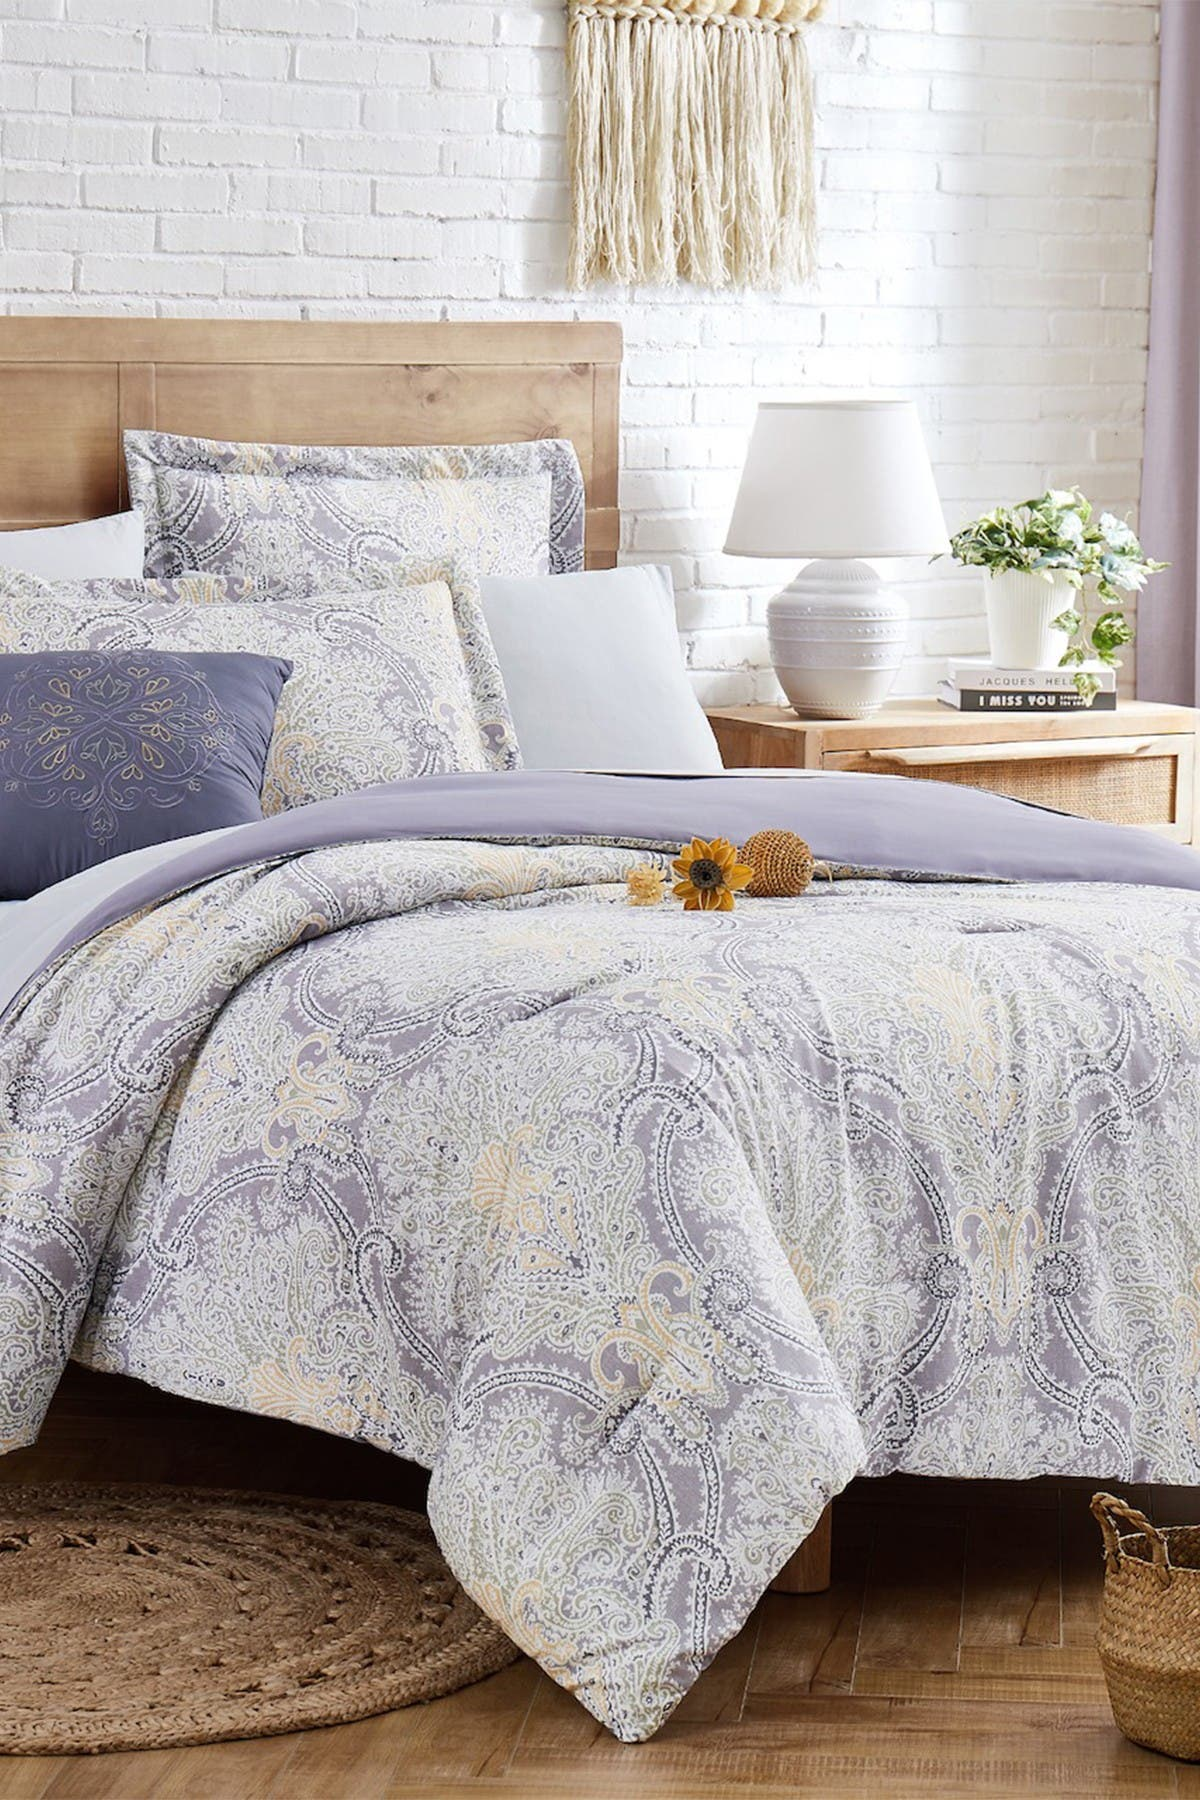 Image of Modern Threads Complete 8-Piece Bedding Set - Annabelle - California King